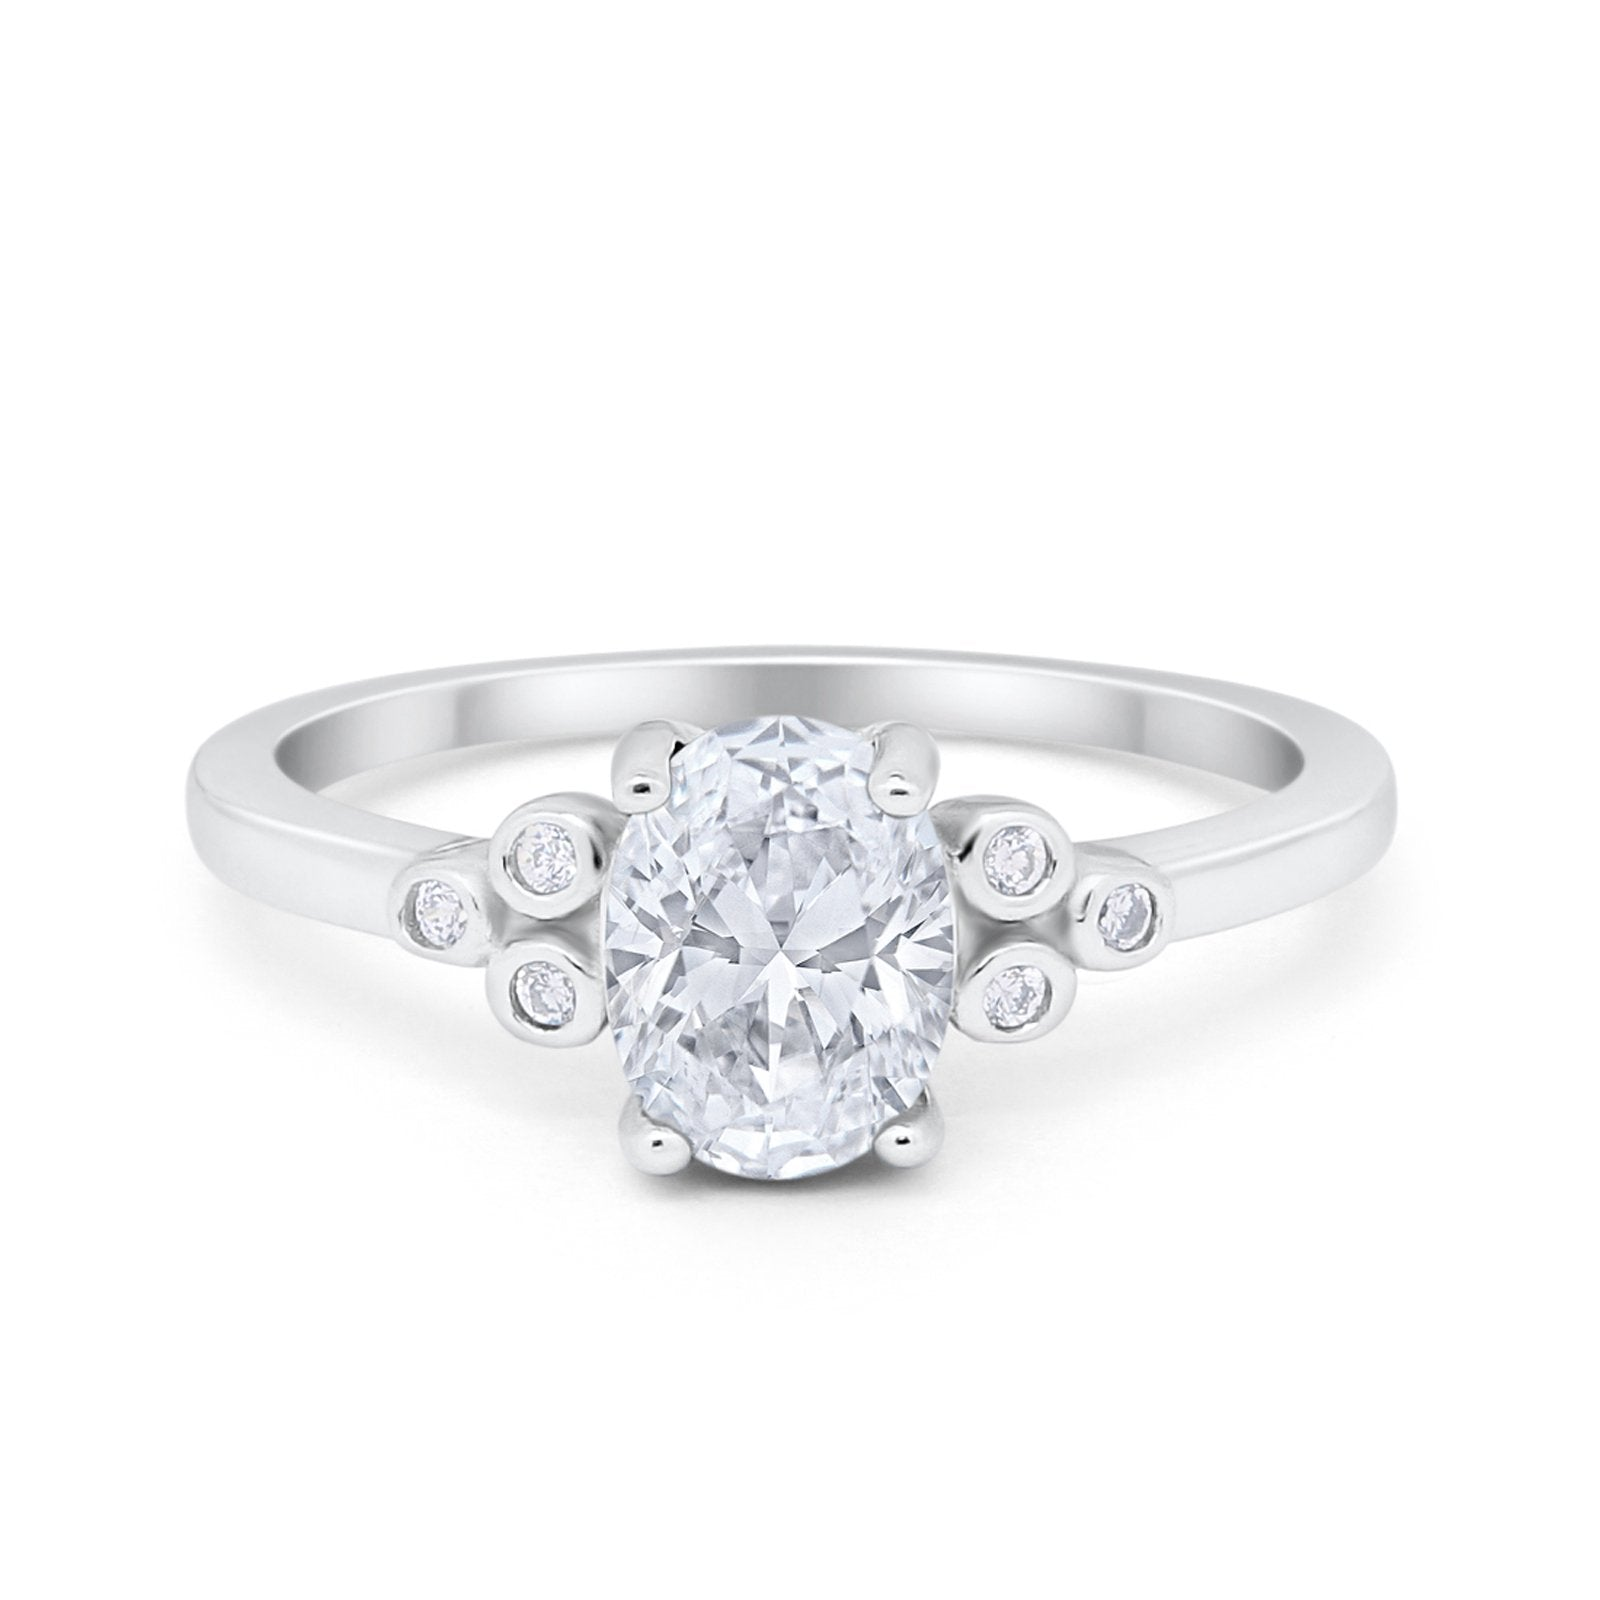 Oval Art Deco Engagement Ring Round Simulated Cubic Zirconia 925 Sterling Silver